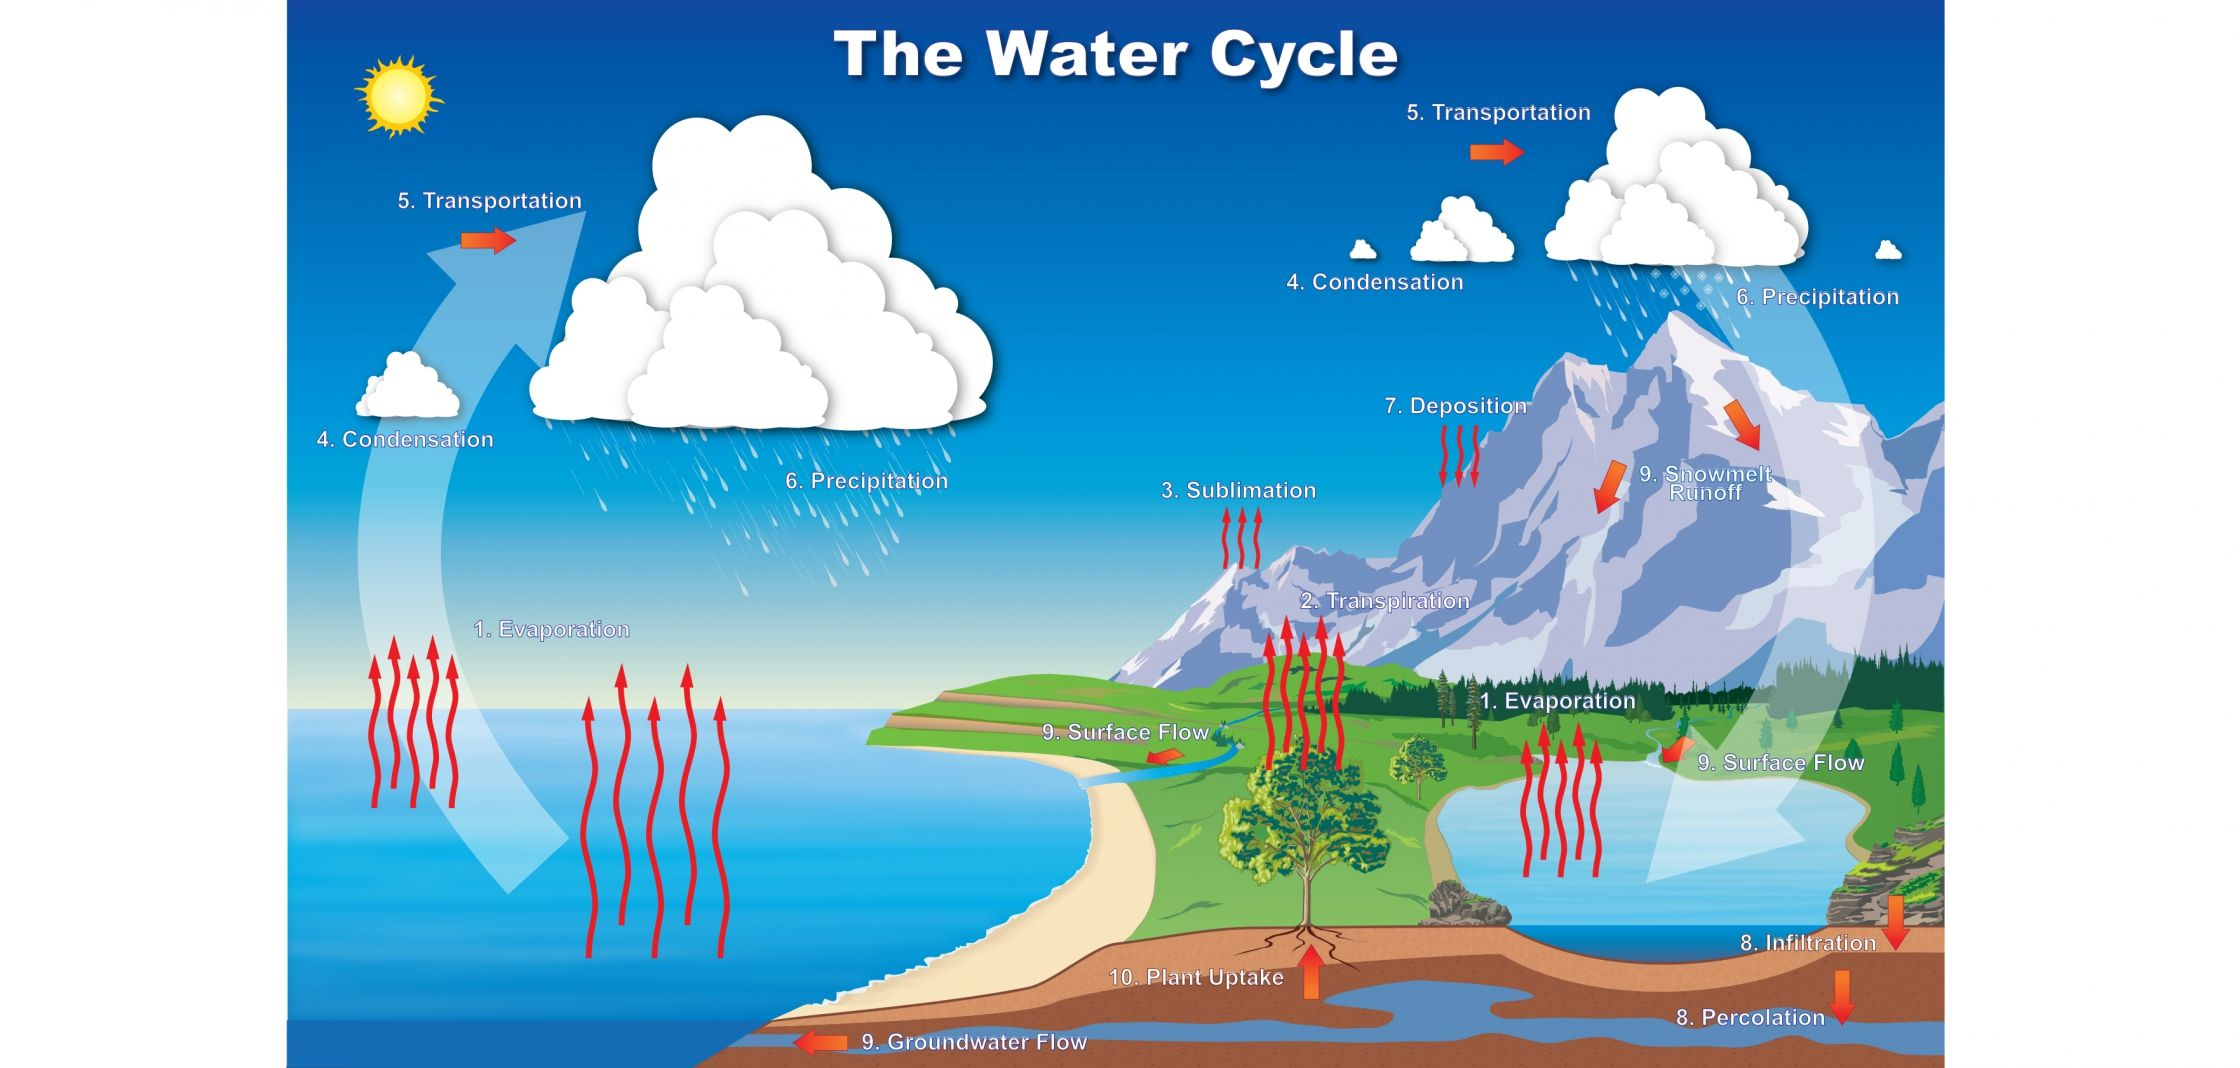 medium resolution of water moves through earth s systems in a cyclic fashion taking many forms as it travels this process is known as the hydrologic or water cycle